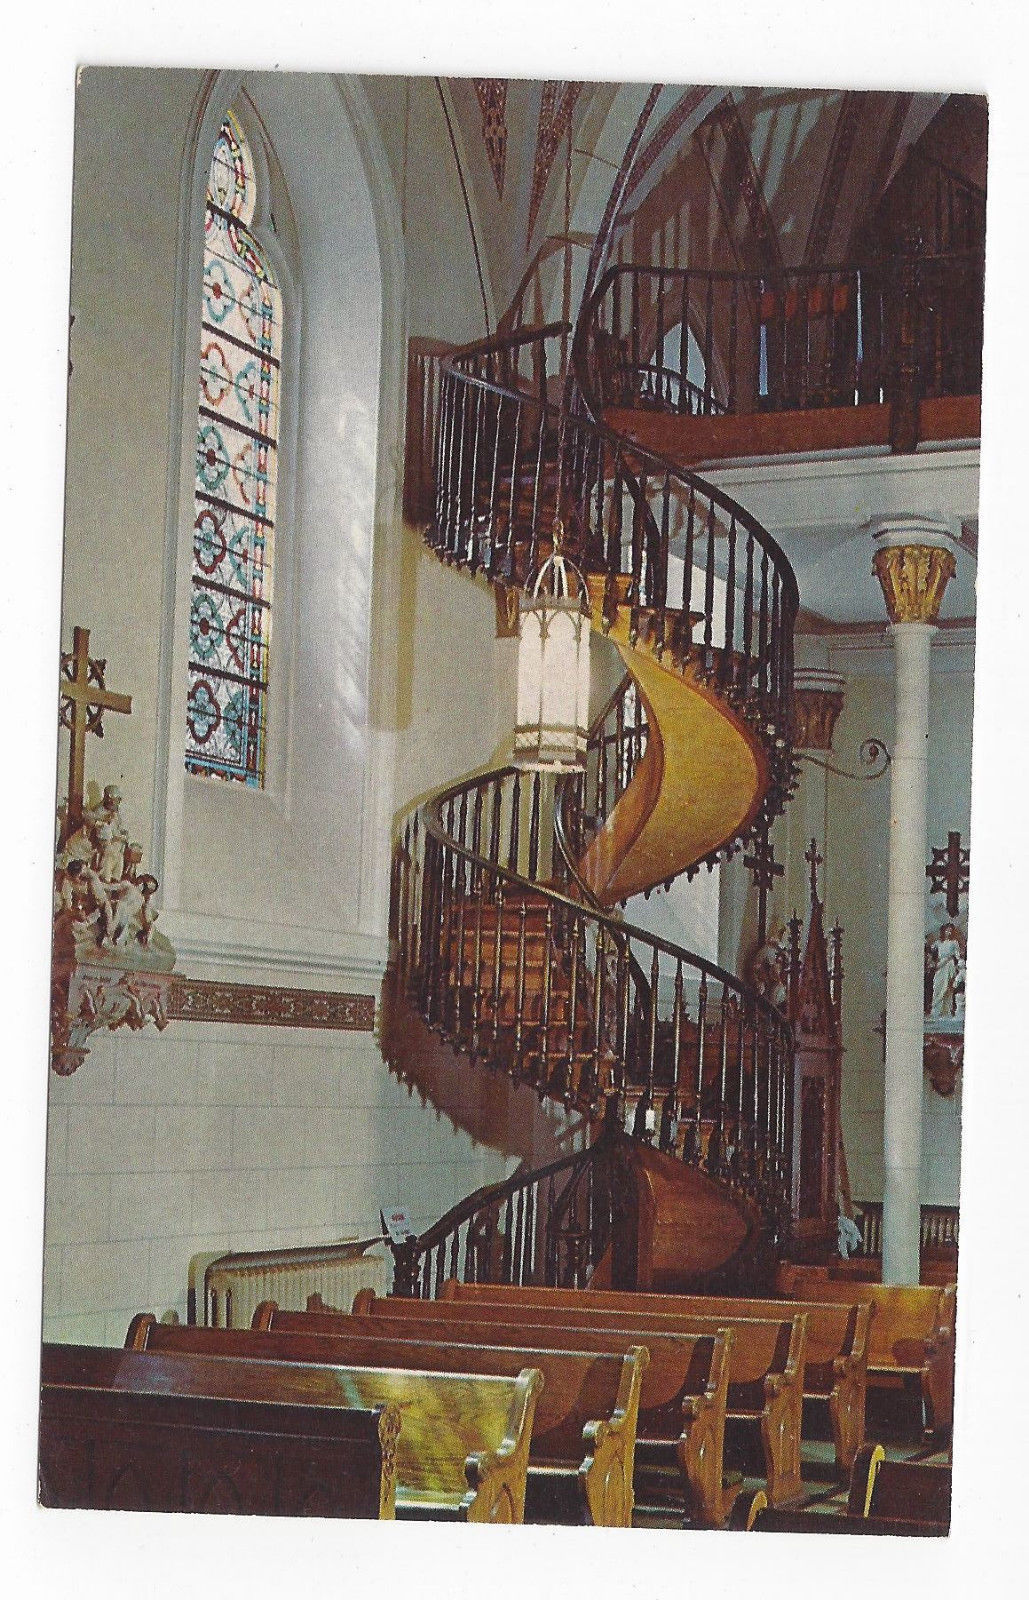 NM Santa Fe Loretto Academy Spiral Staircase Chapel of Our Lady Vintage Postcard